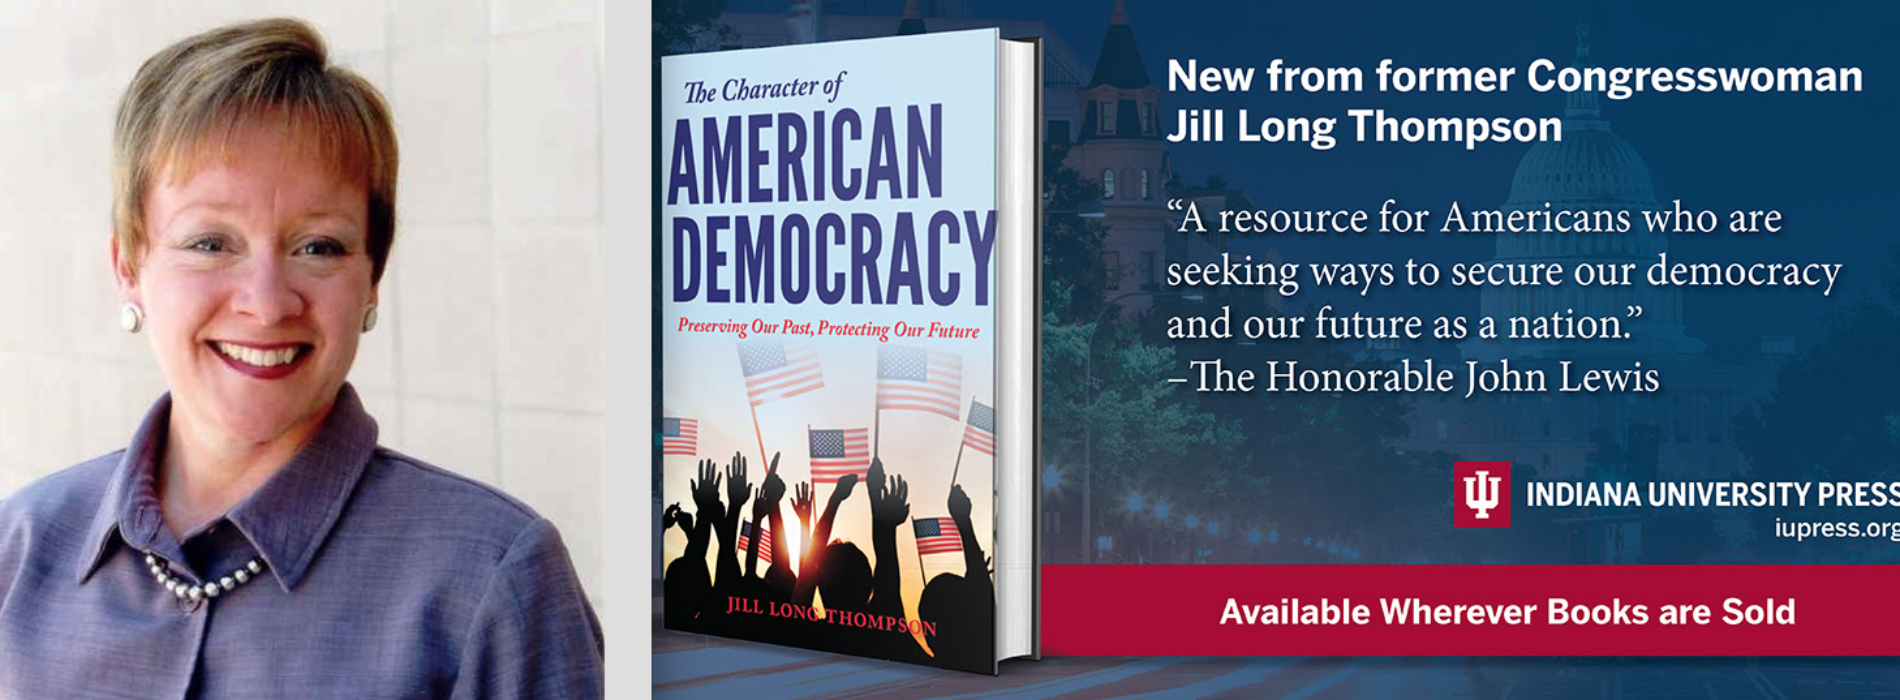 Jill Long Thompson on The SnydeReport with Gary Snyder